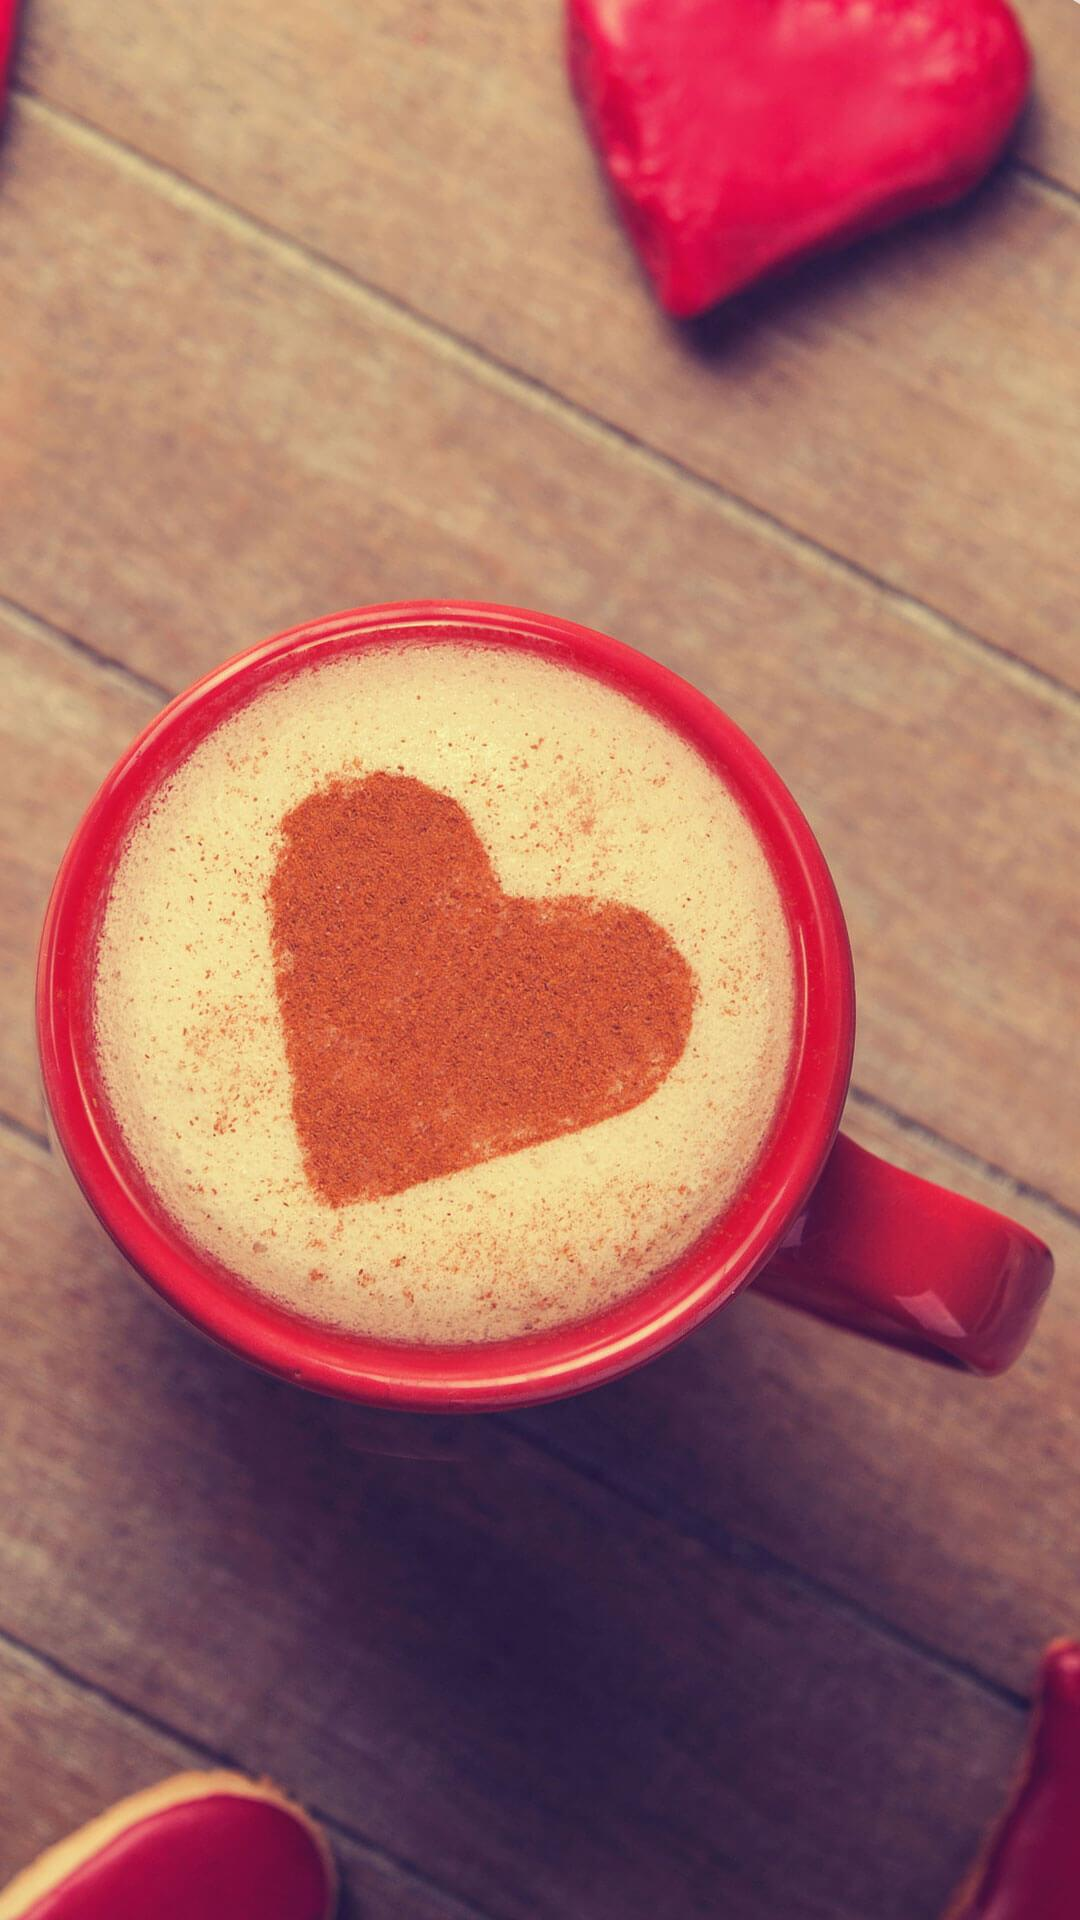 Coffee Love Wallpapers Wallpaper Cave